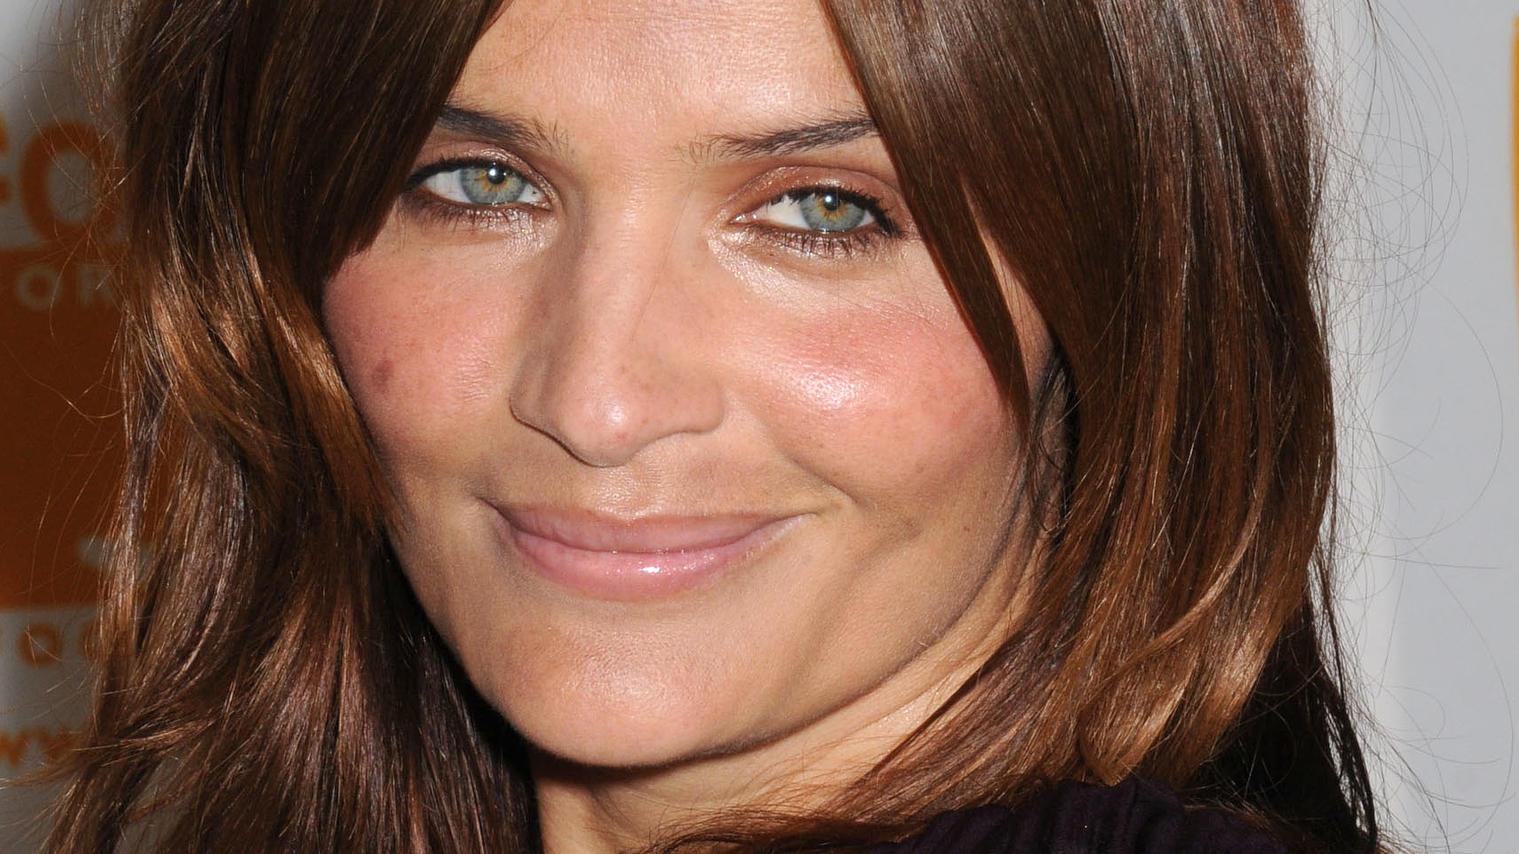 Former supermodel  Helena Christensen arrives for the Food Bank of New York City's Sixth Annual Can-Do Awards; a tribute to the fight against hunger, held at Abigail Kirsch's Pier Sixty, Chelsea Piers in New York City.